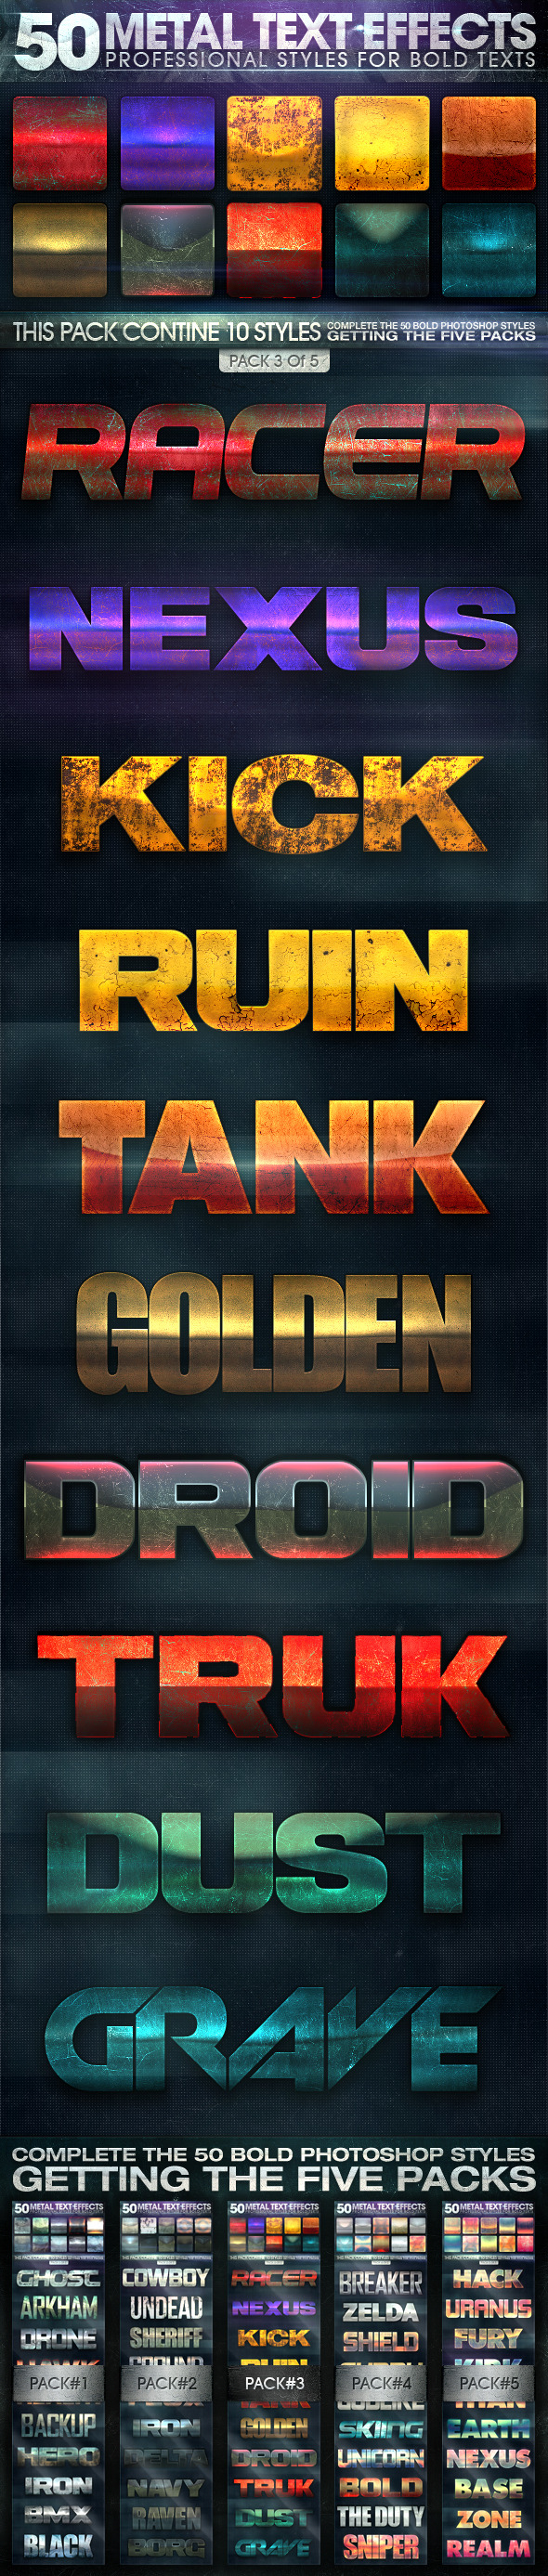 50 Metal Text Effects 3 of 5 - Text Effects Styles